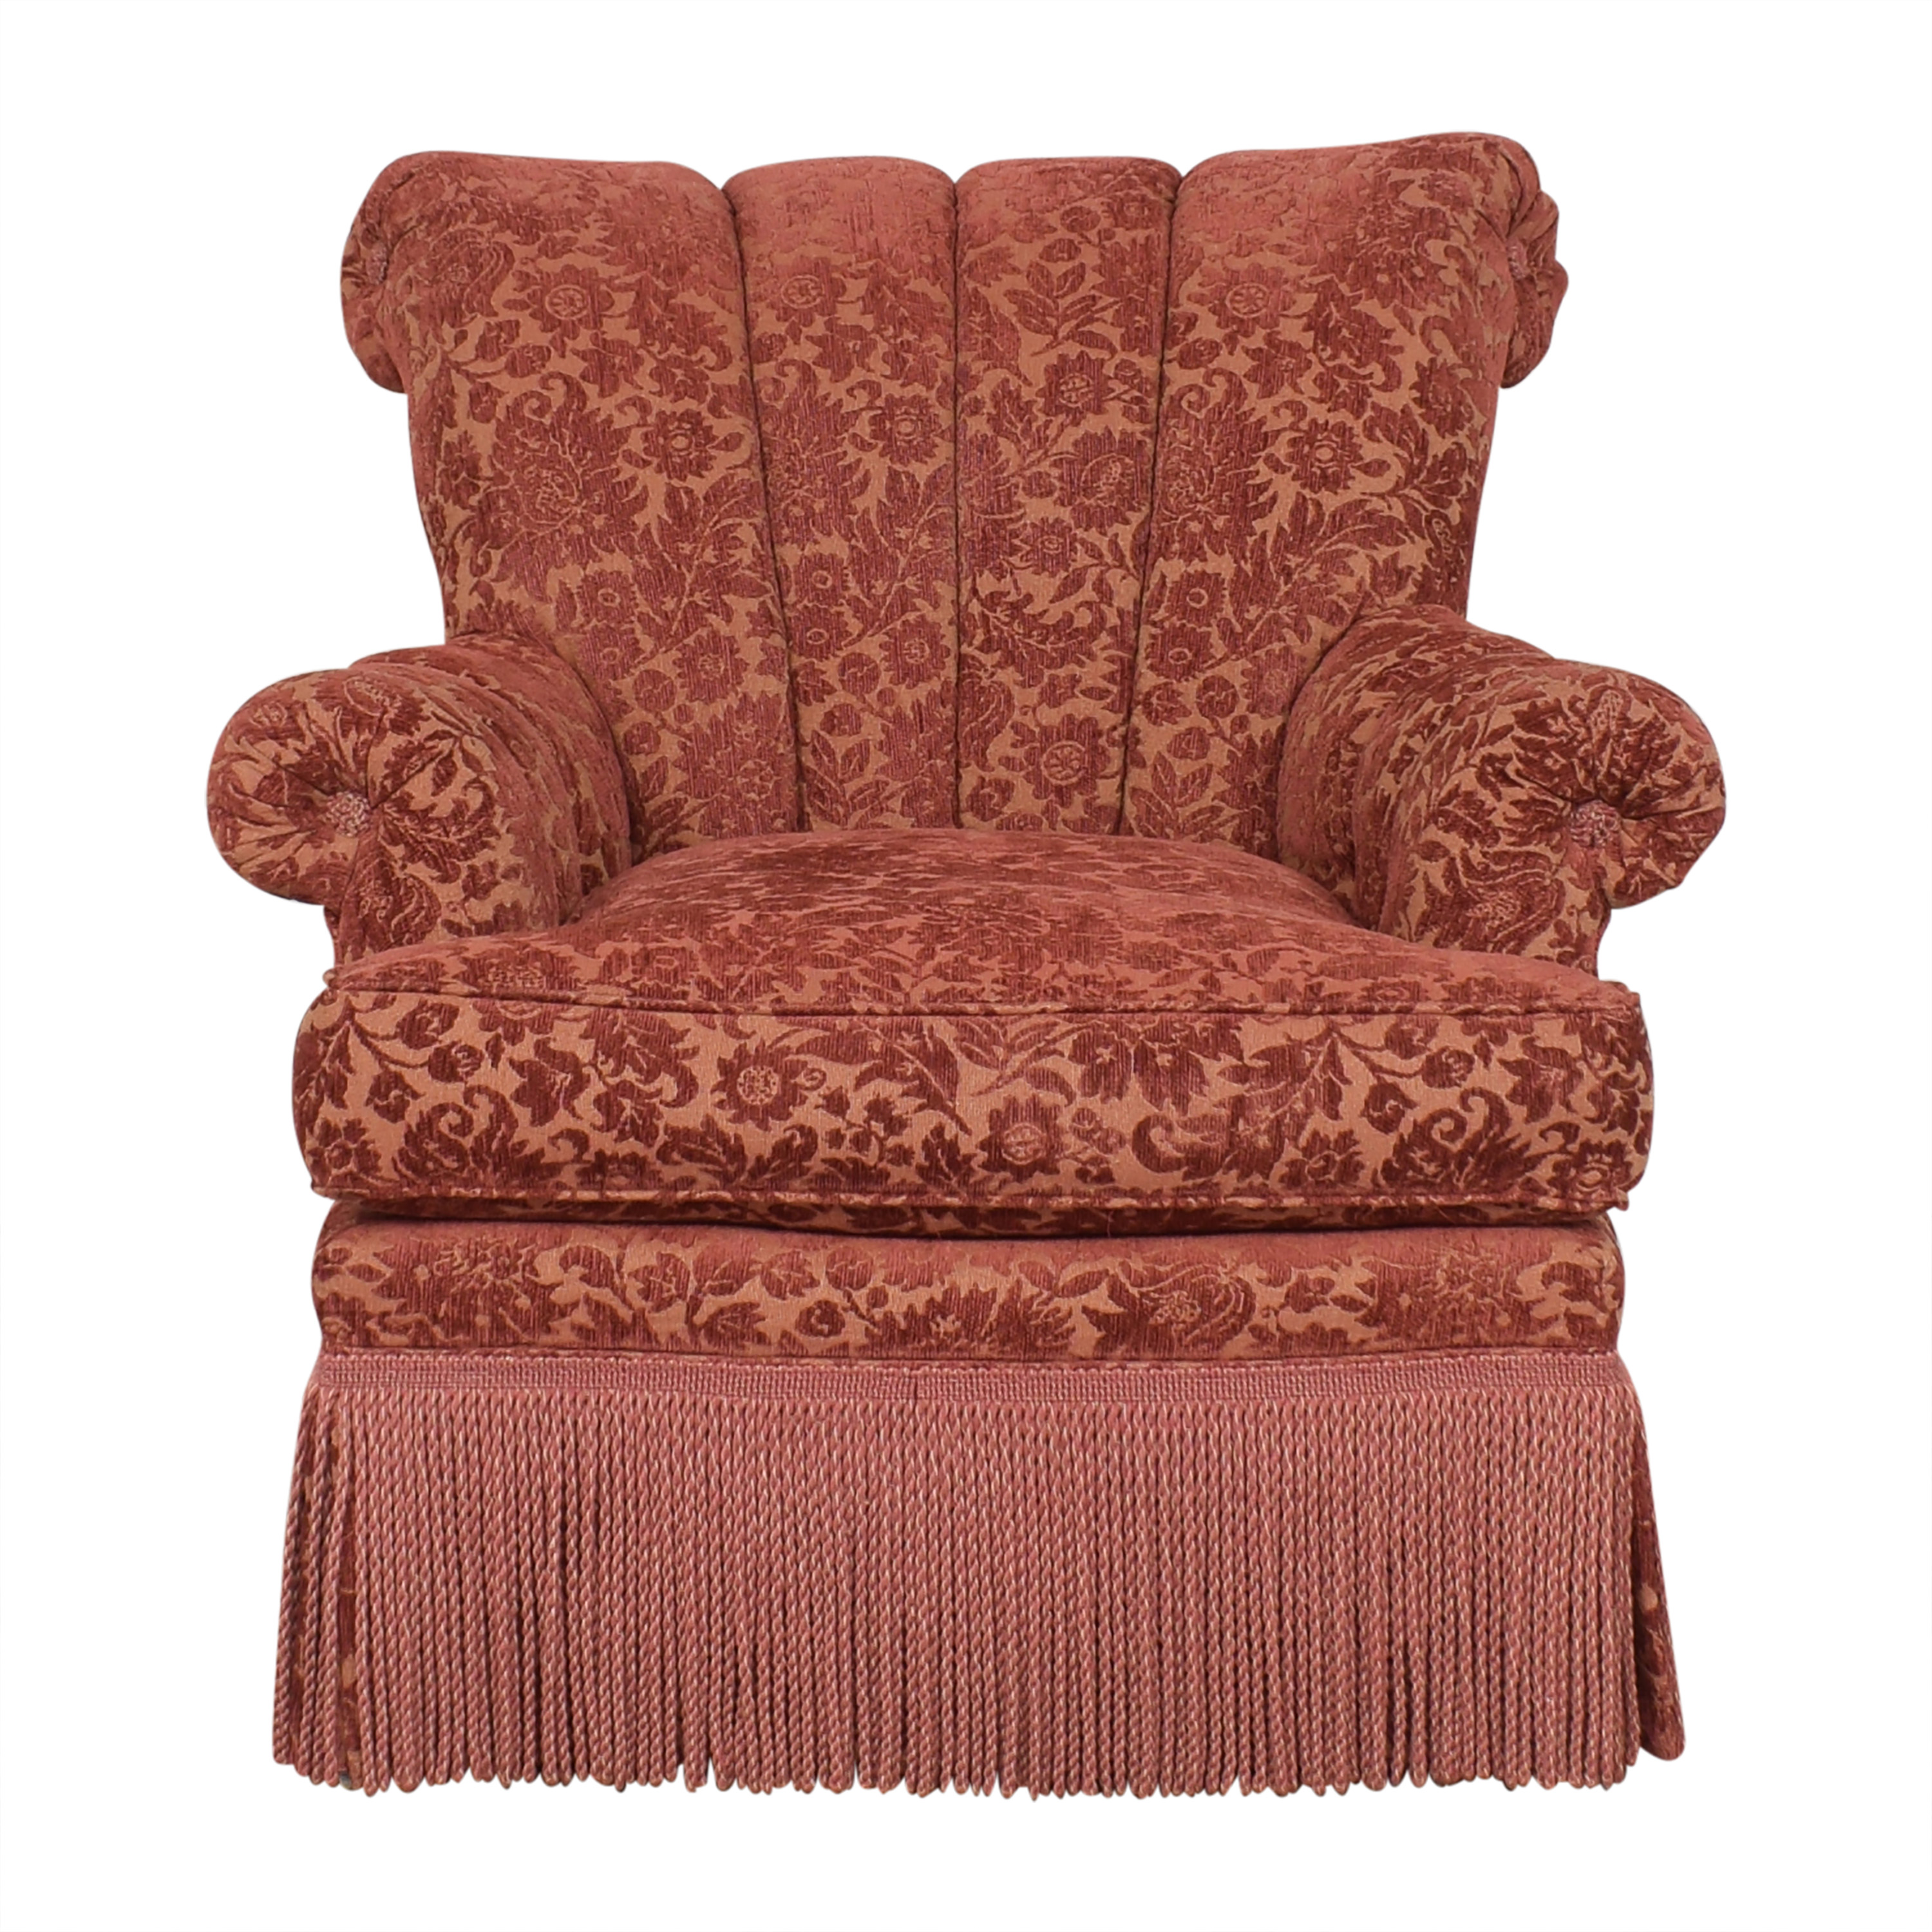 shop Domain Fringed Roll Arm Chair Domain